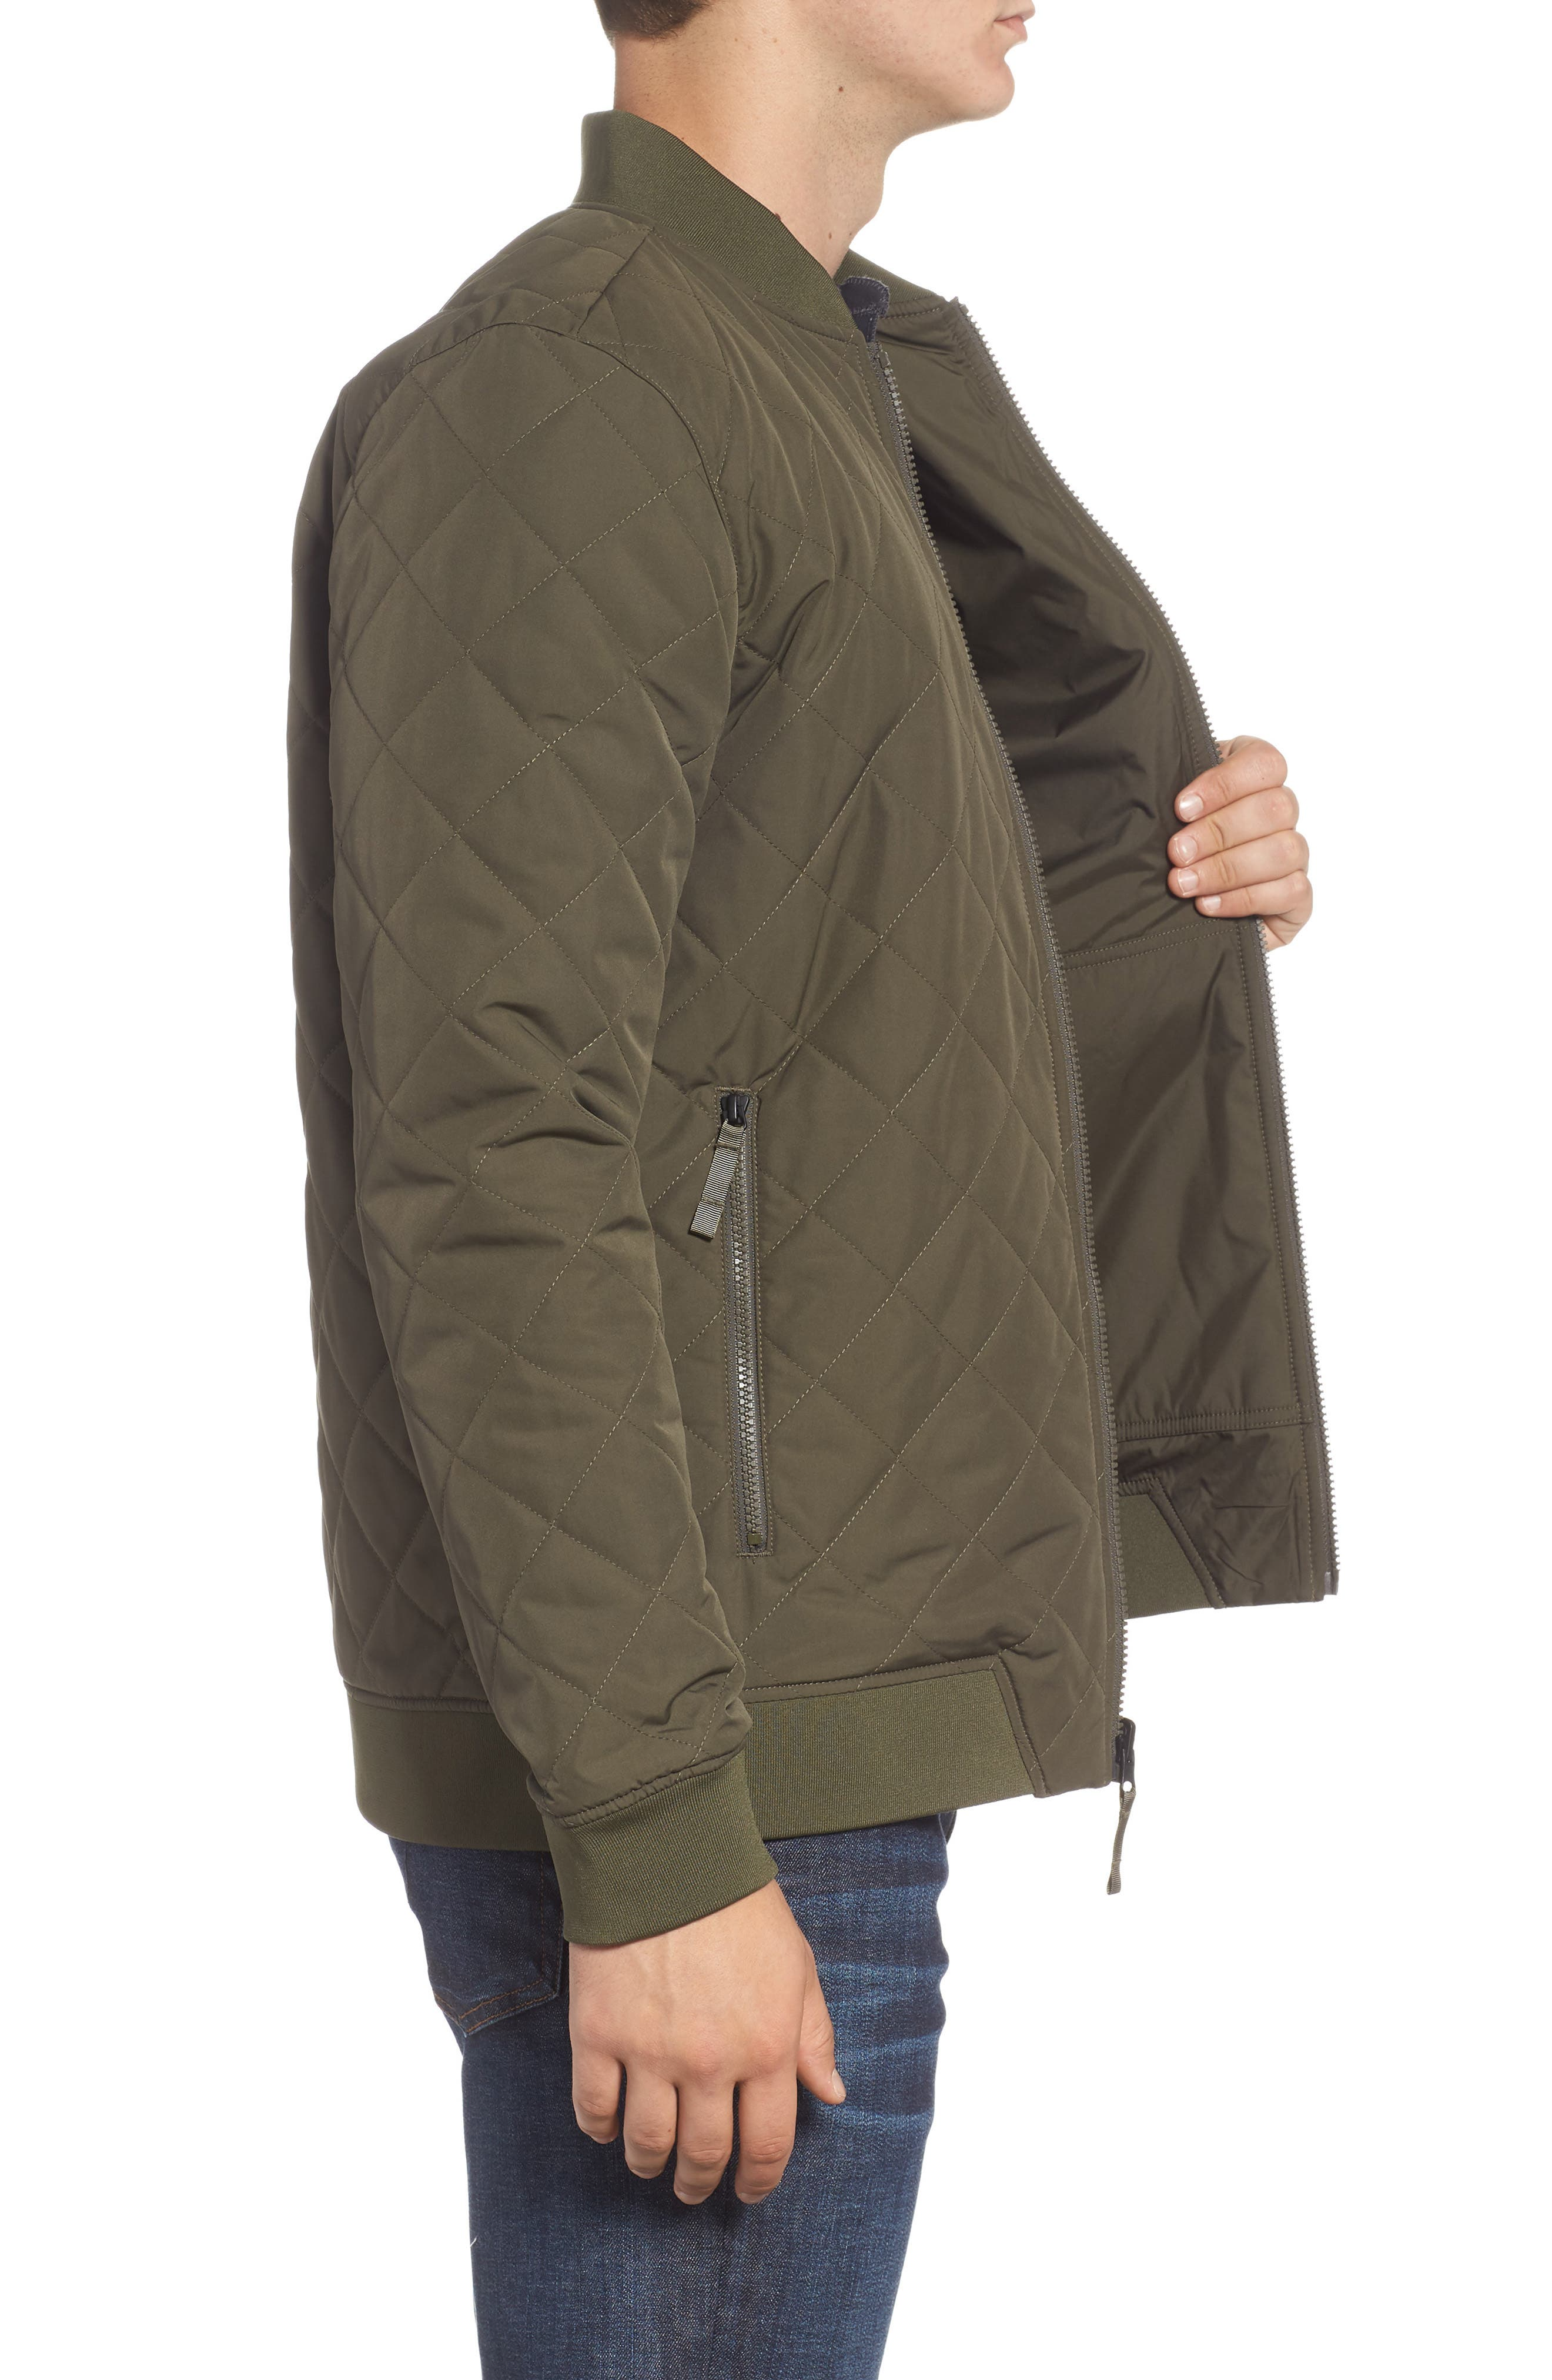 THE NORTH FACE,                             Jester Reversible Bomber Jacket,                             Alternate thumbnail 4, color,                             NEW TAUPE GREEN